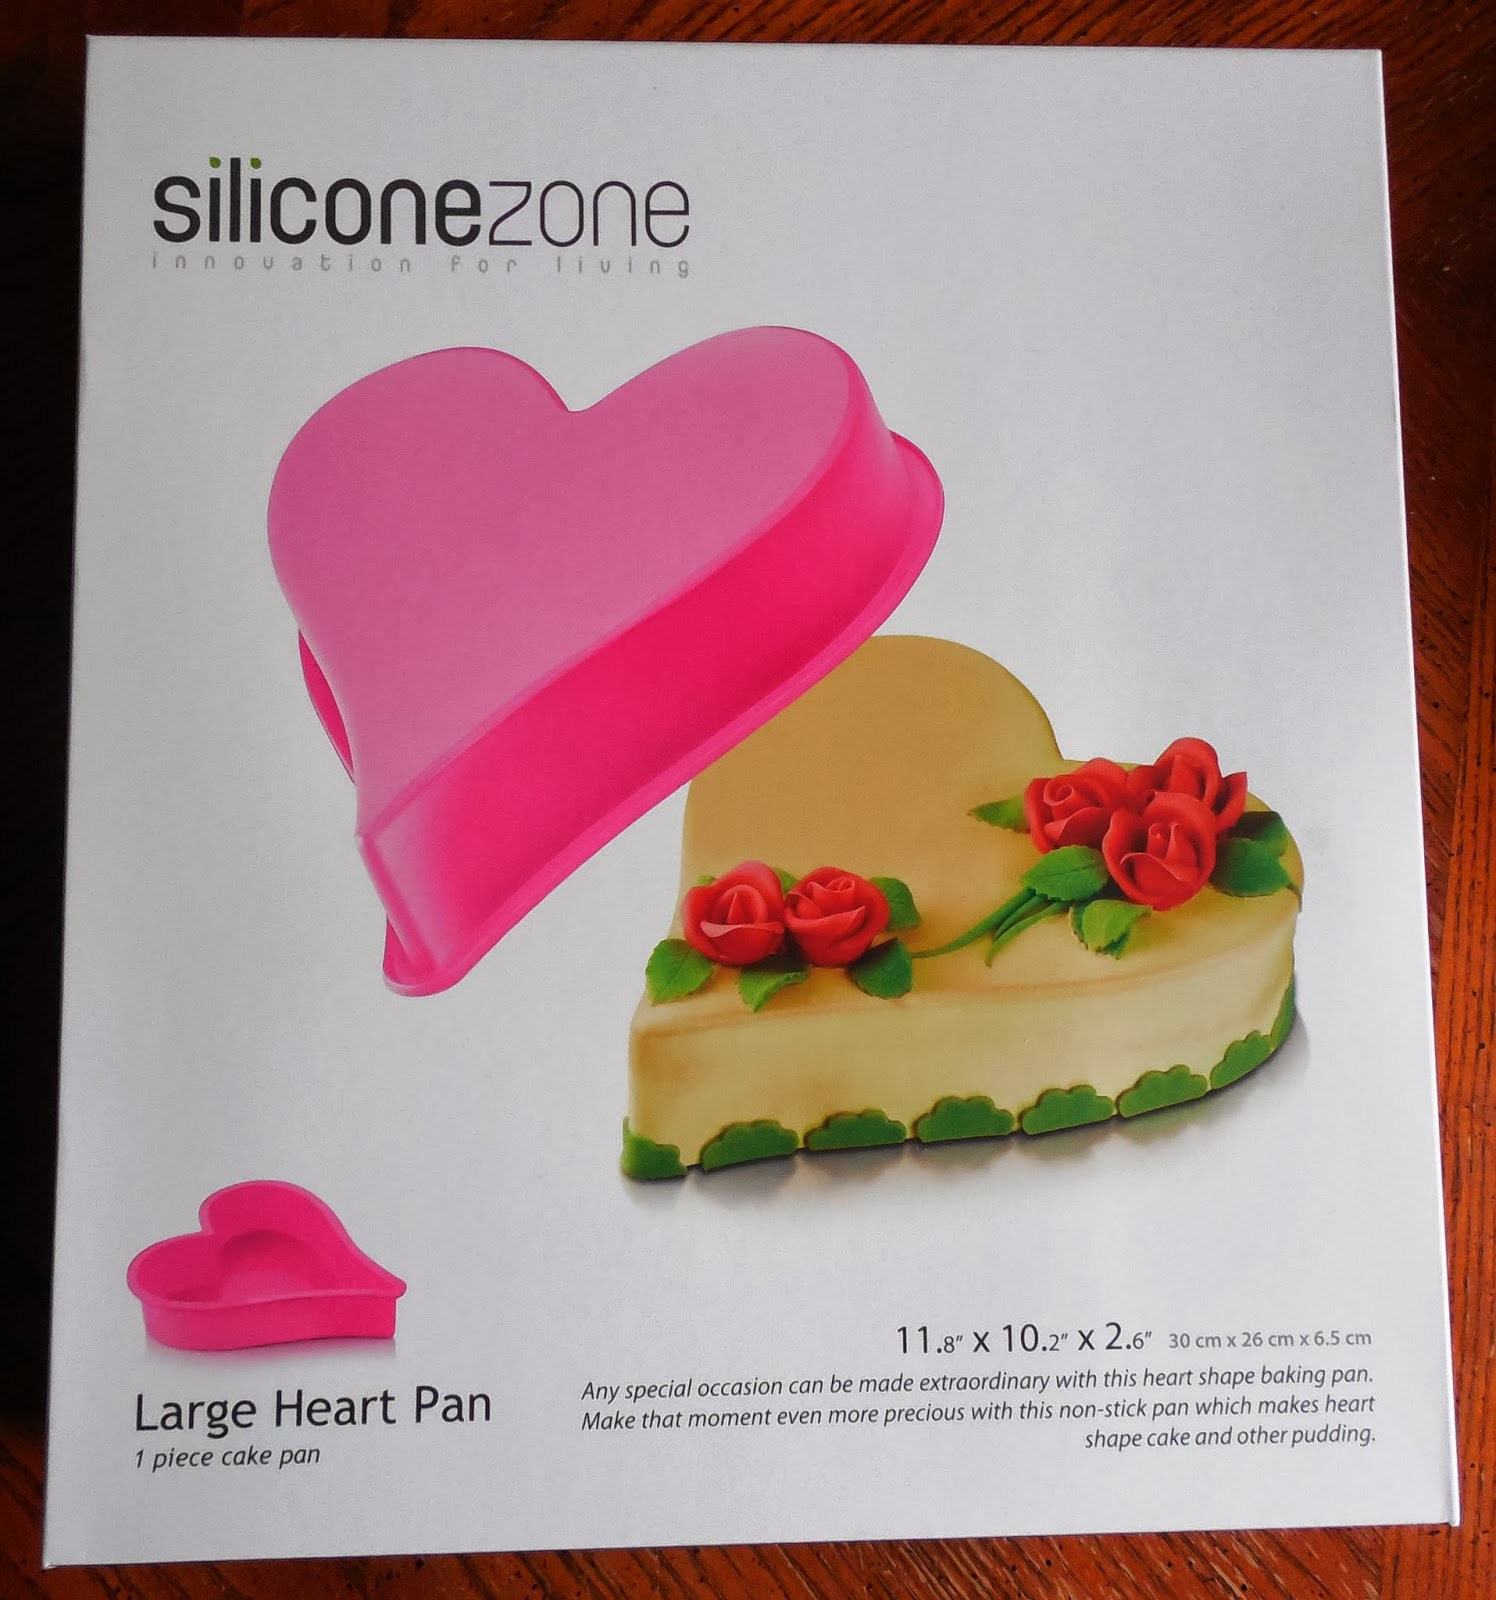 Siliconezone Heart Pan